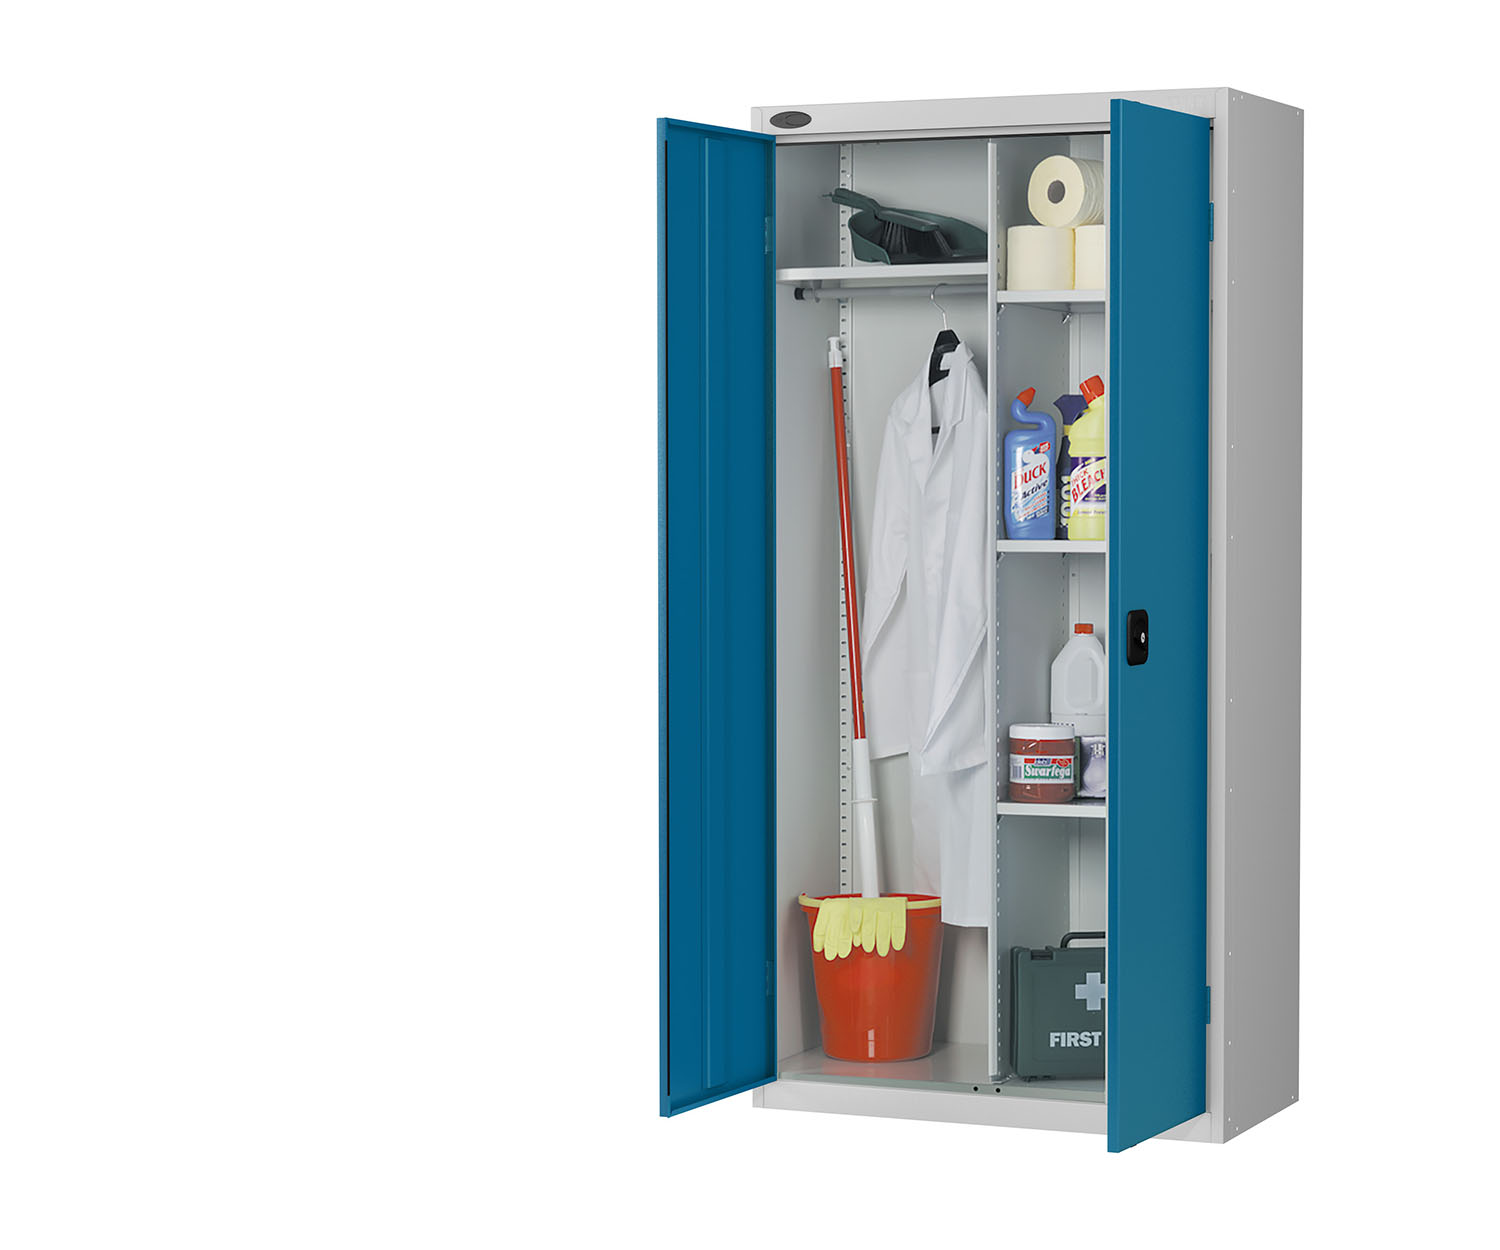 Probe cupboard wardrobe blue